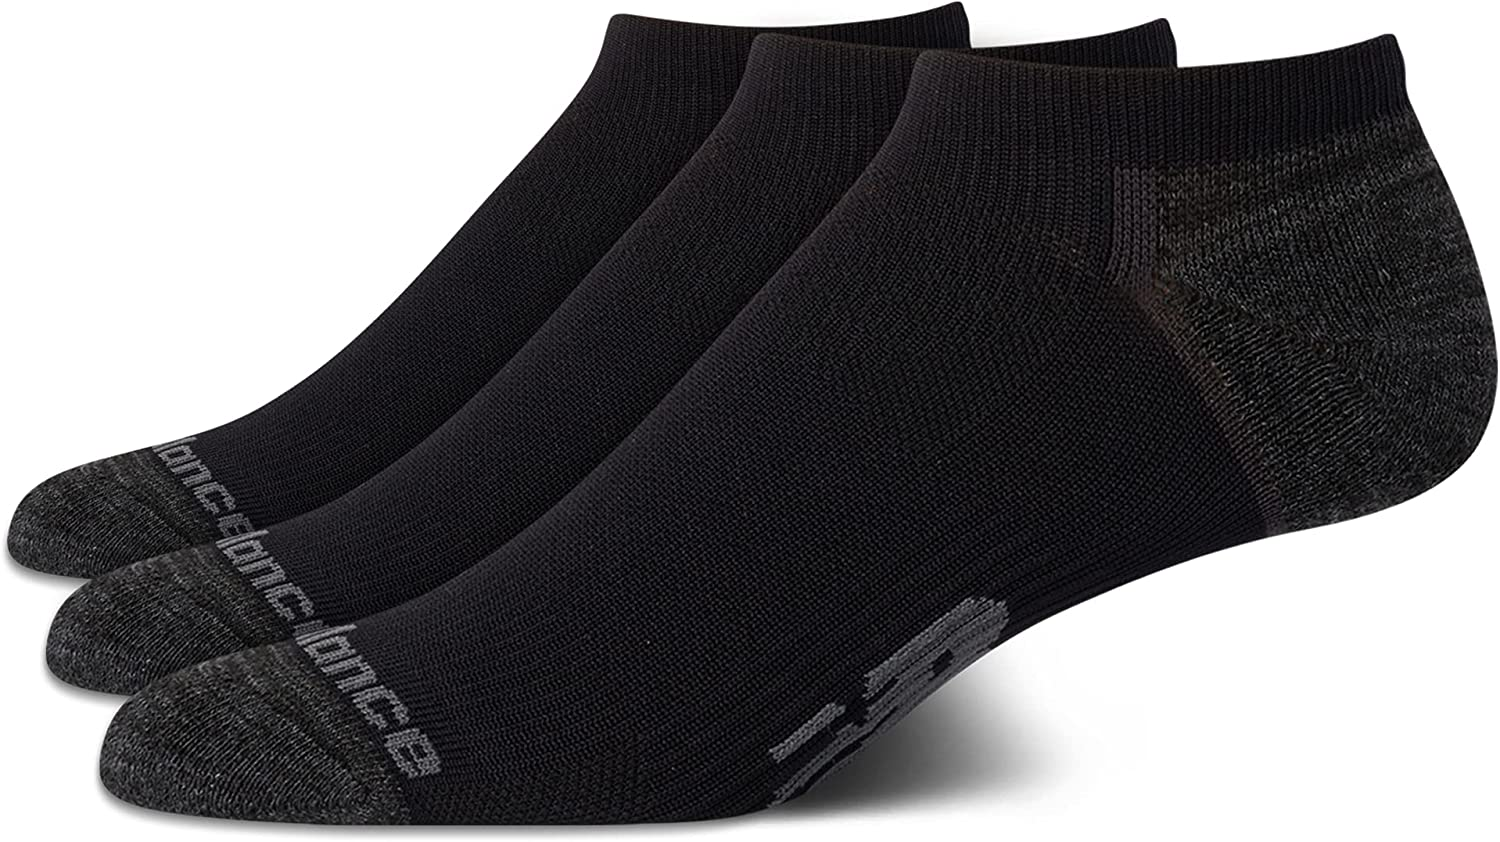 New Balance Men's 3 Pack Cushioned Moisture Wicking No Show Socks with Arch Support